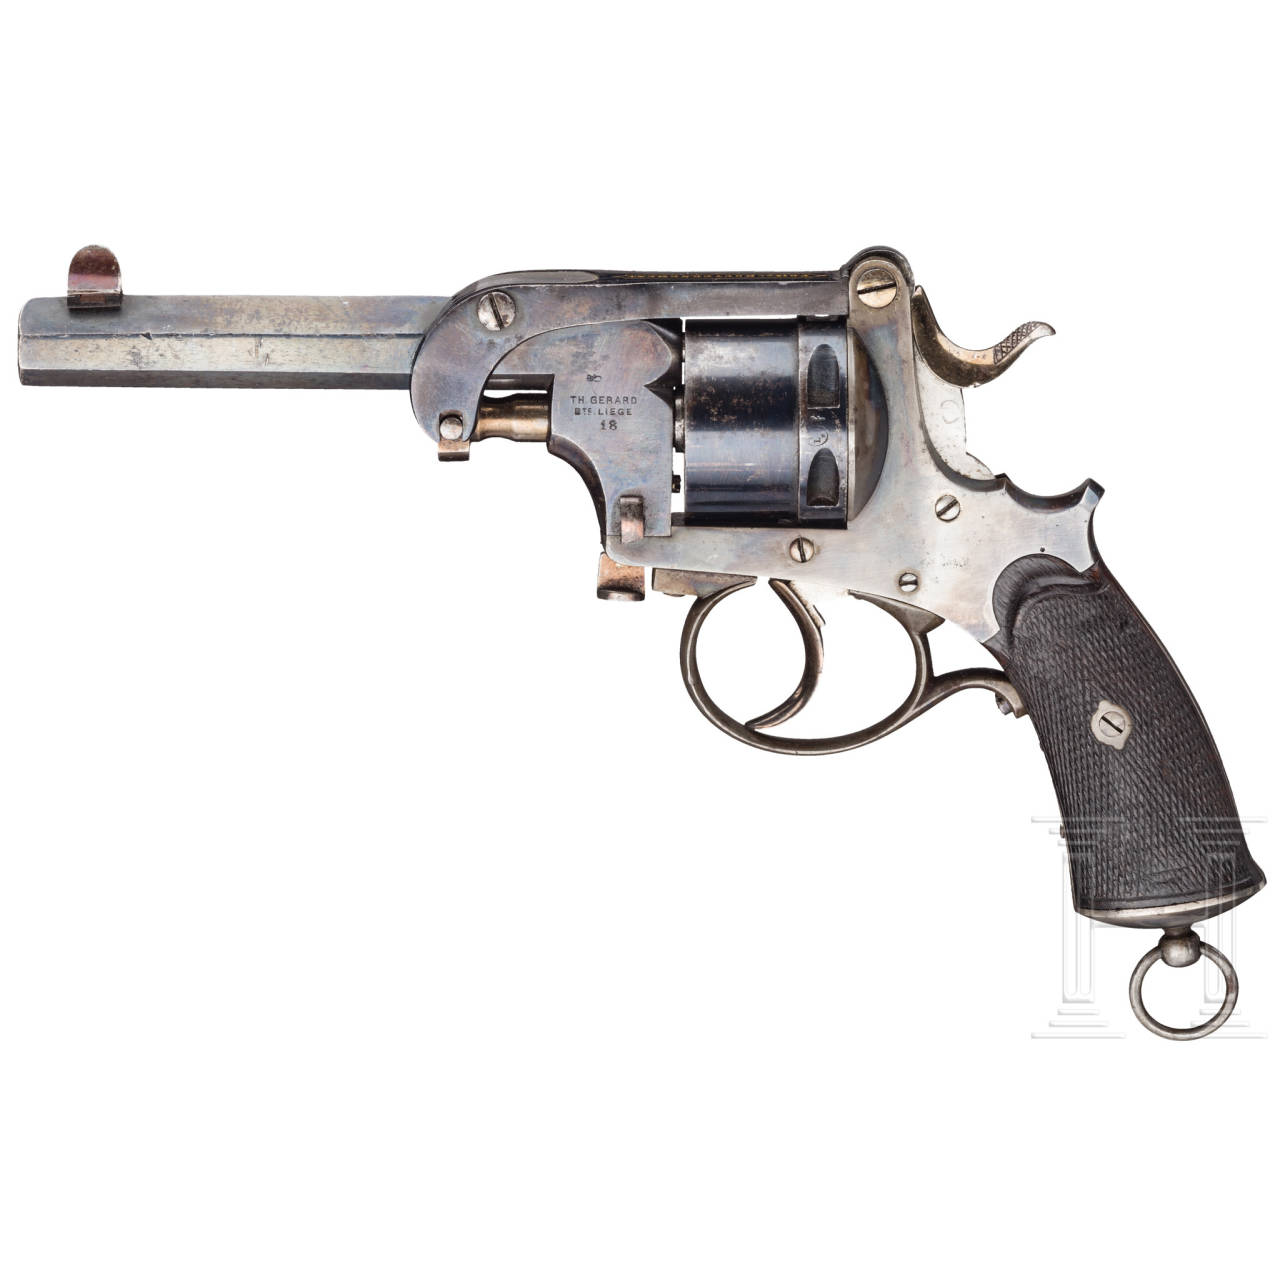 Lot 282 | Modern pistols and revolvers | Online Catalogue | A79s